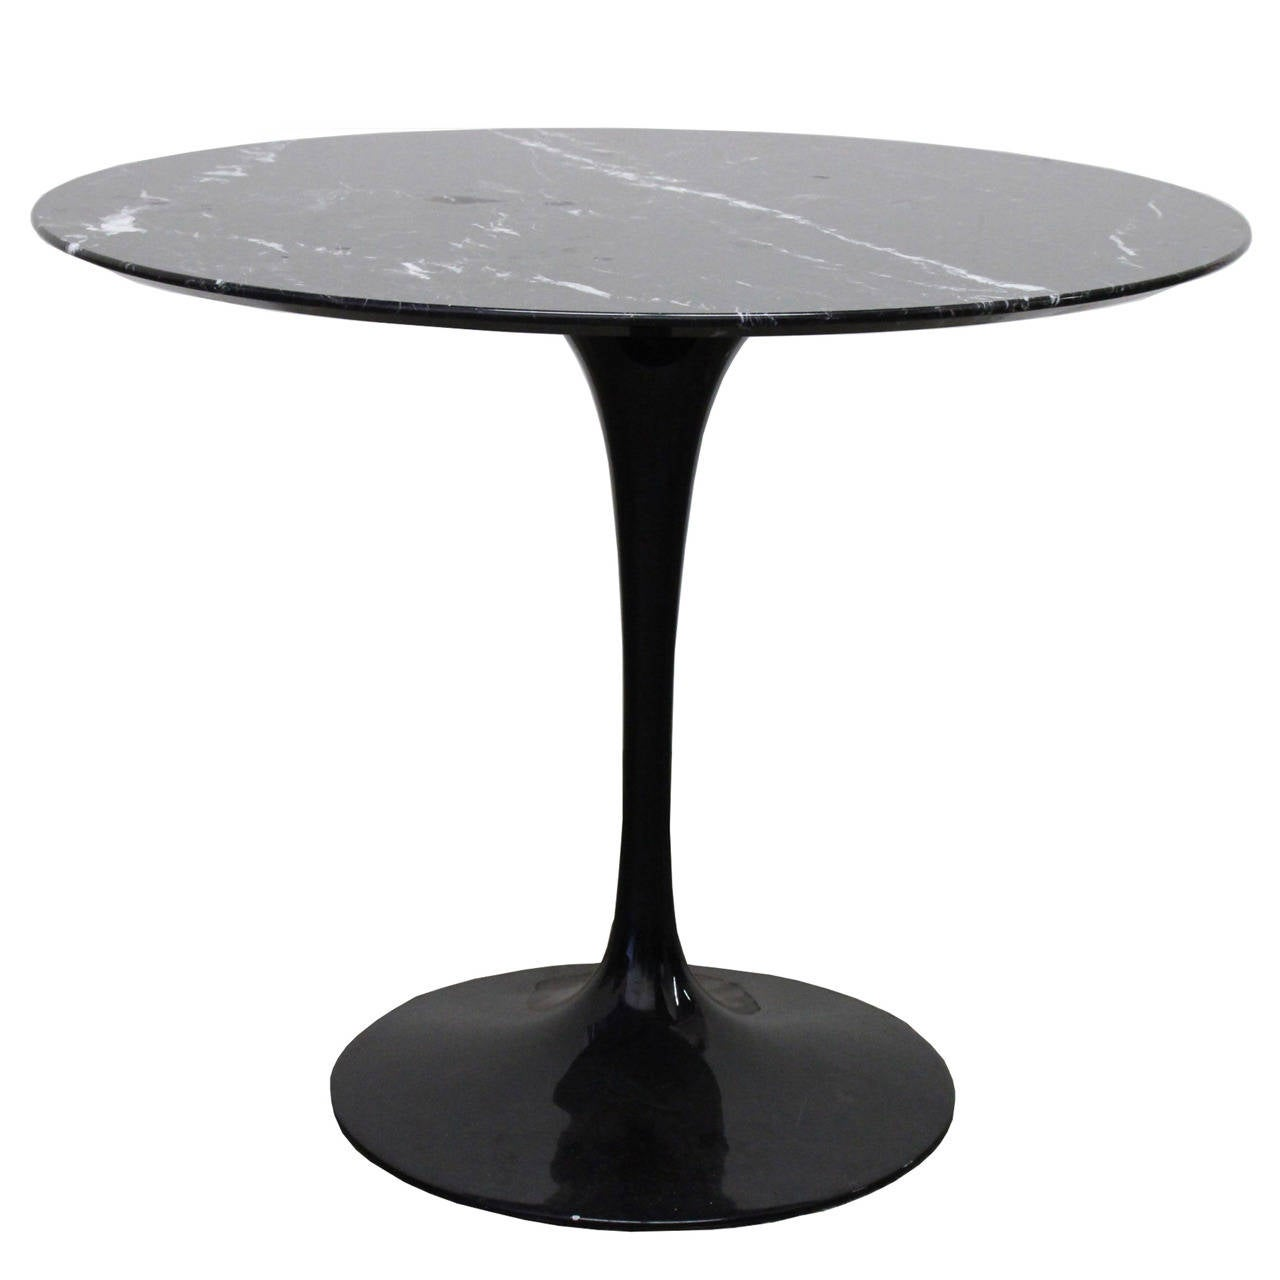 black marble tulip table by saarinen at 1stdibs. Black Bedroom Furniture Sets. Home Design Ideas